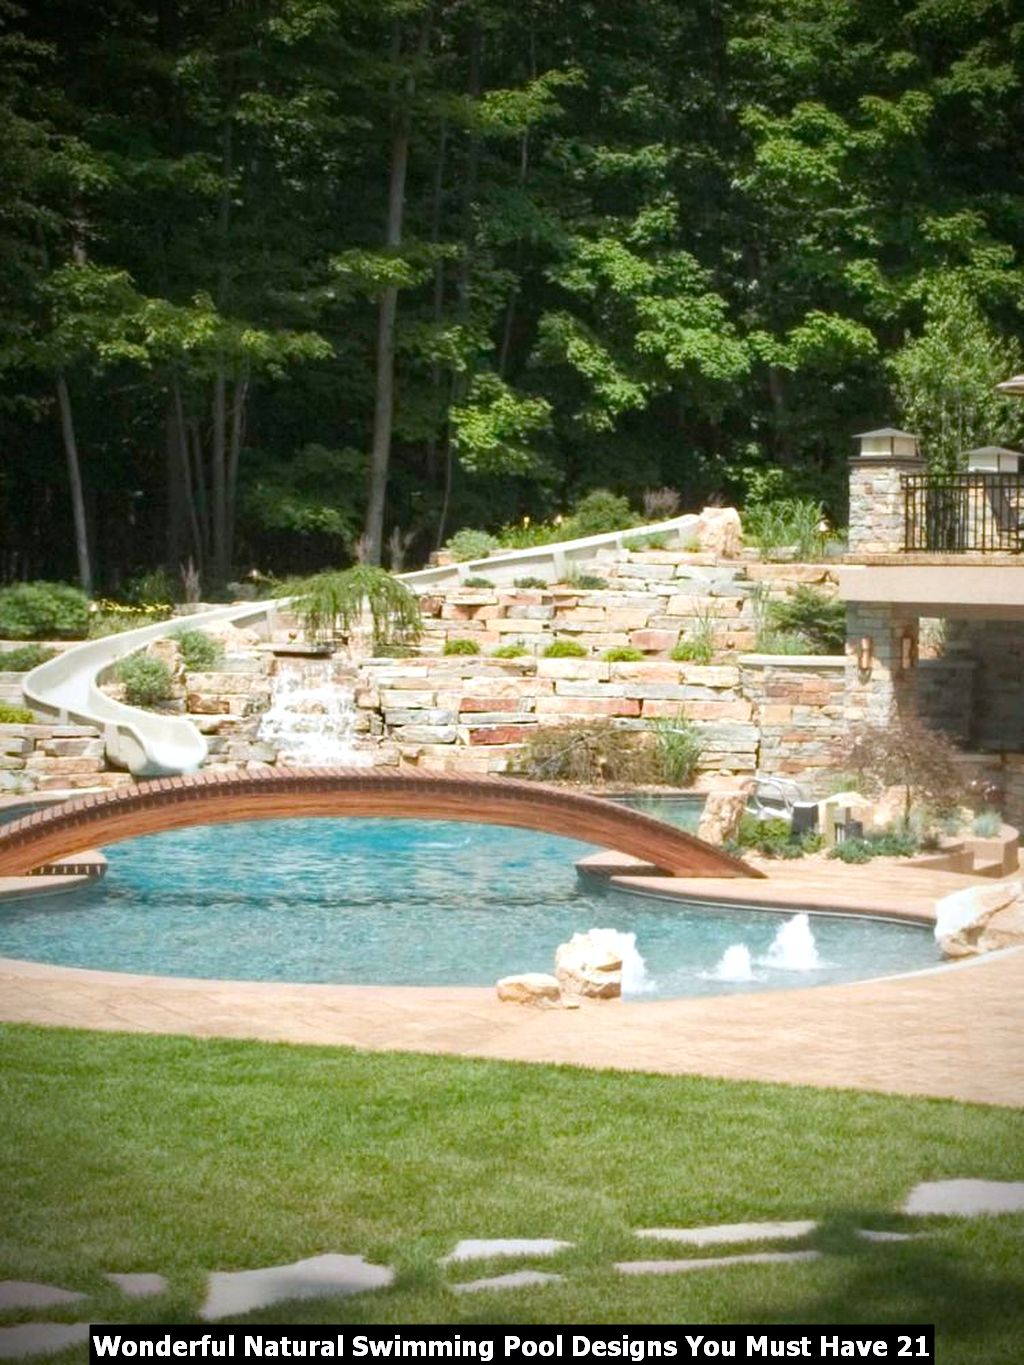 Wonderful Natural Swimming Pool Designs You Must Have 21